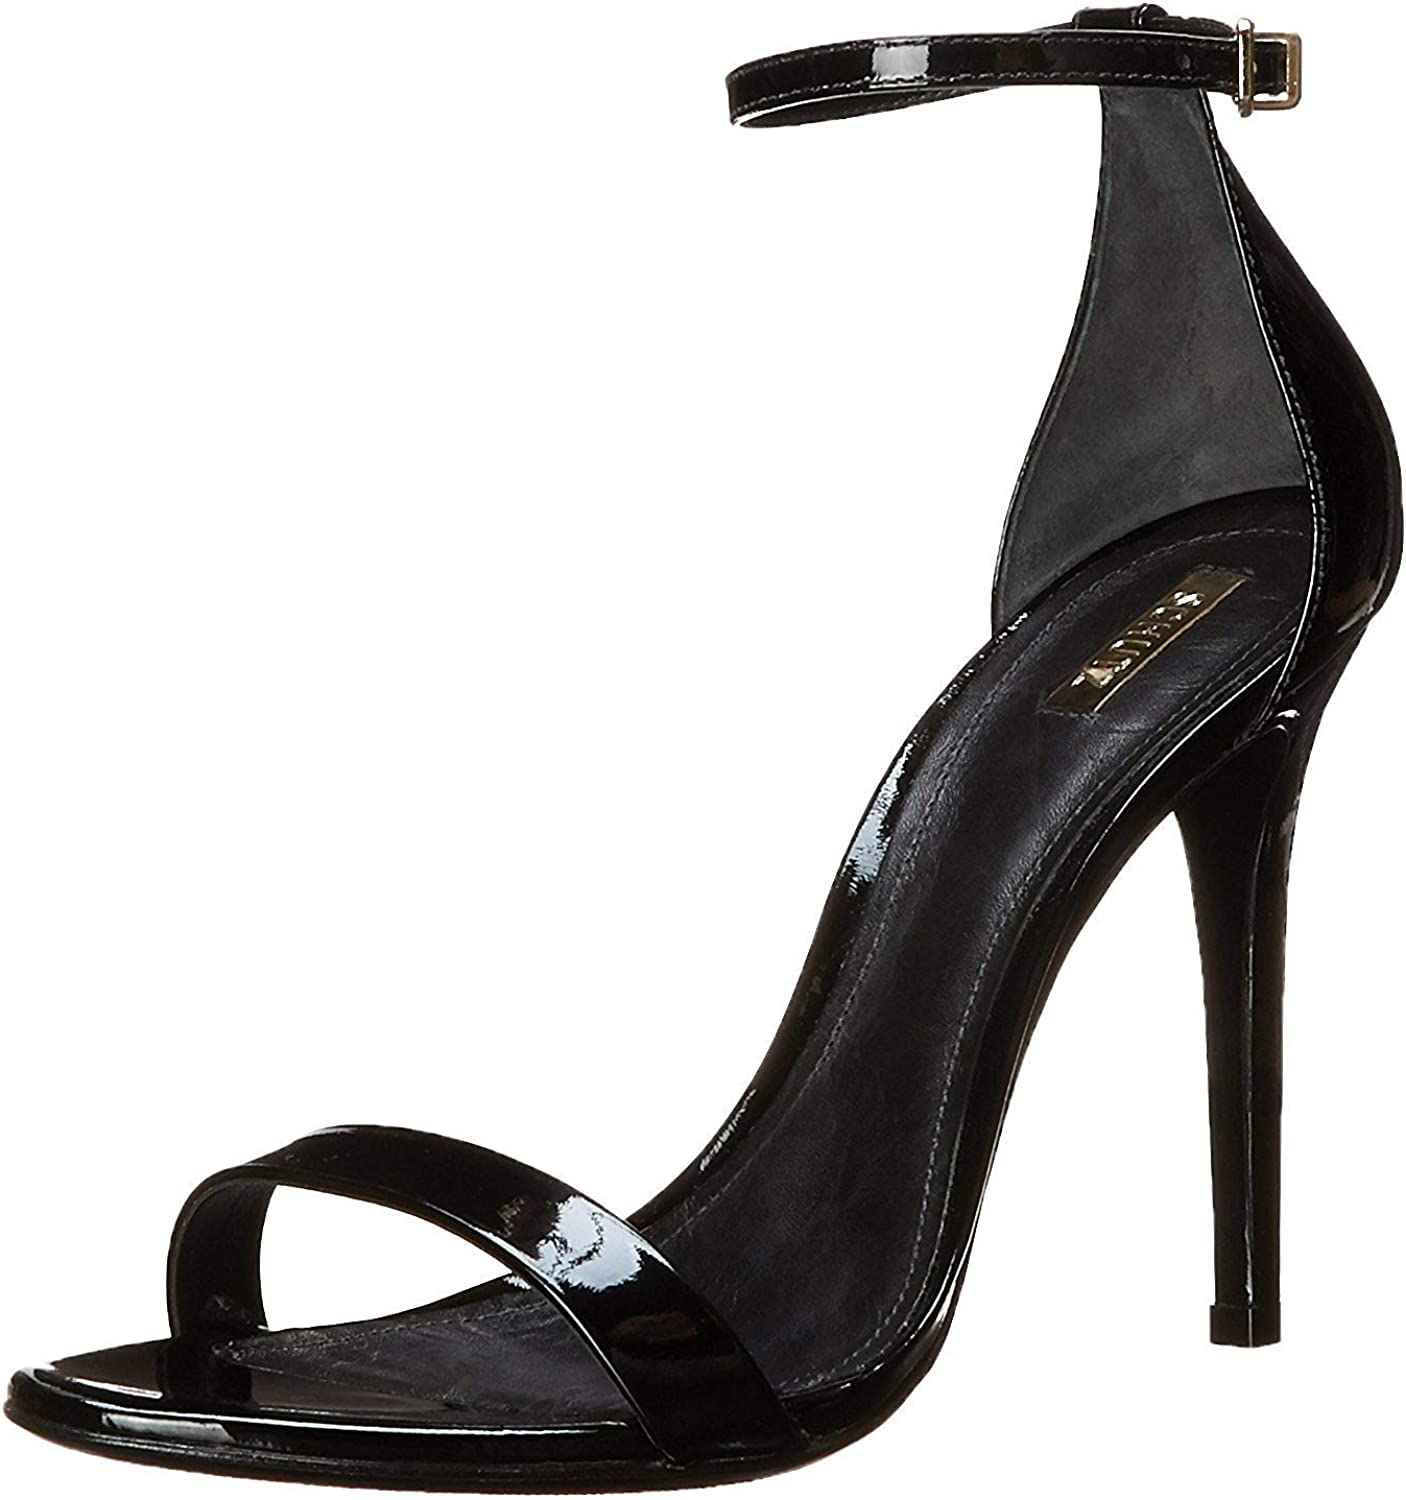 Schutz Womens Cadey Leather Open Toe Formal Ankle Strap, Black Patent, Size 7.5